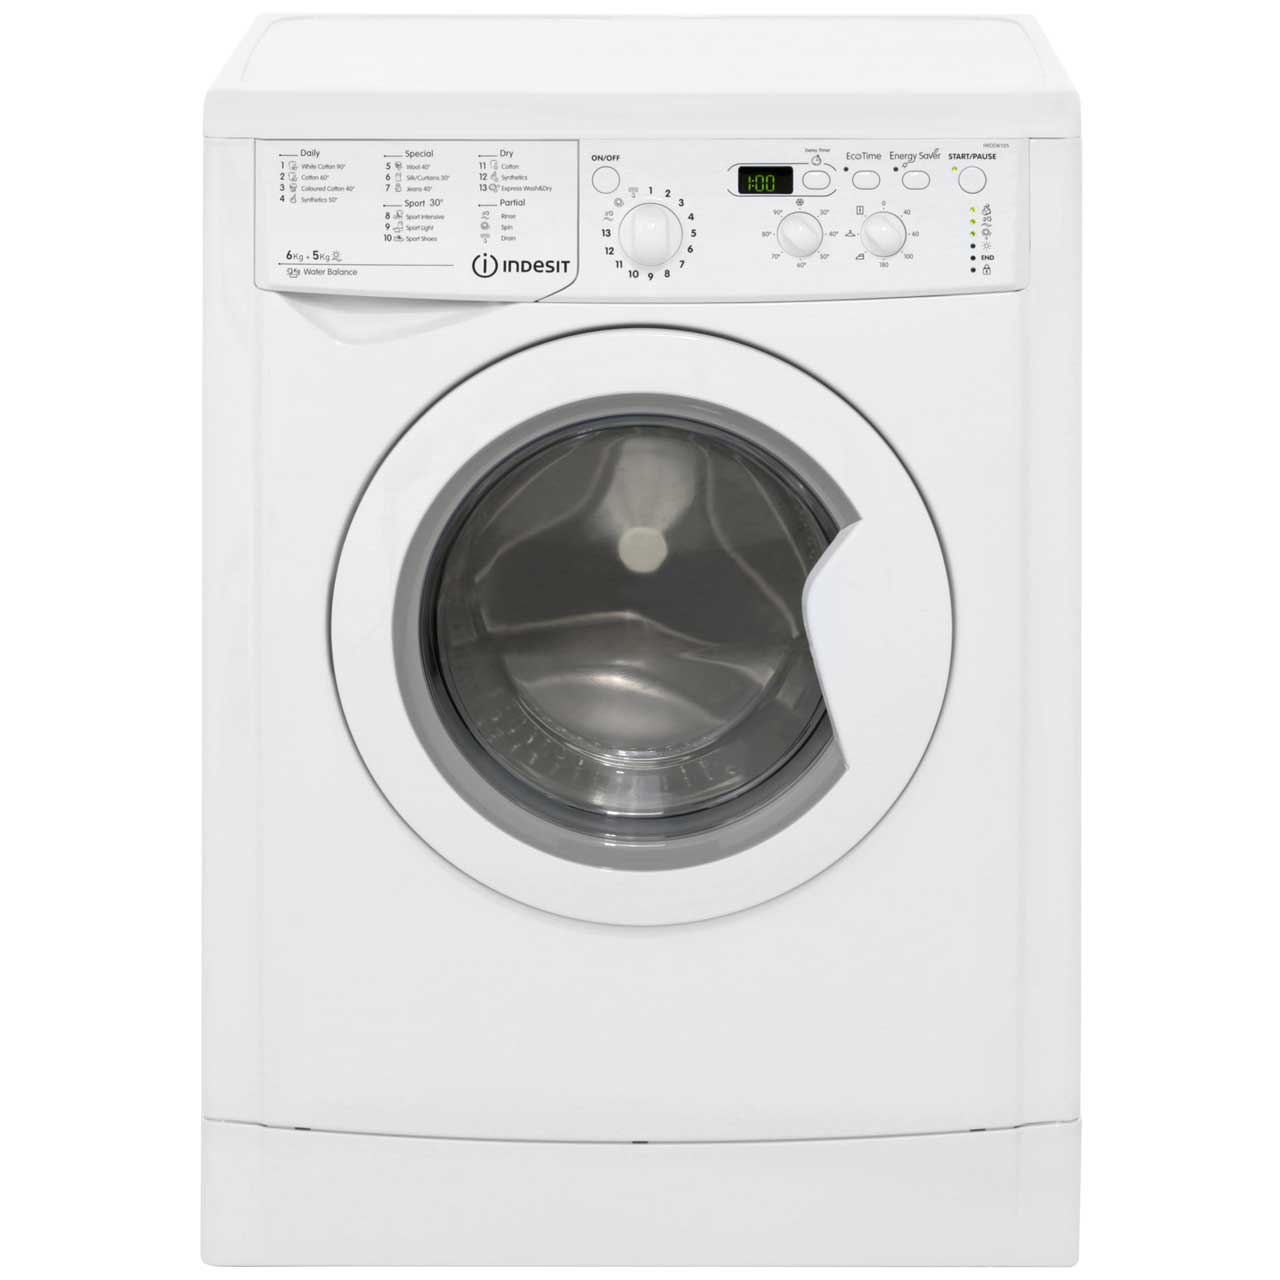 Indesit Eco Time IWDD6105B 6Kg / 5Kg Washer Dryer with 1000 rpm - White